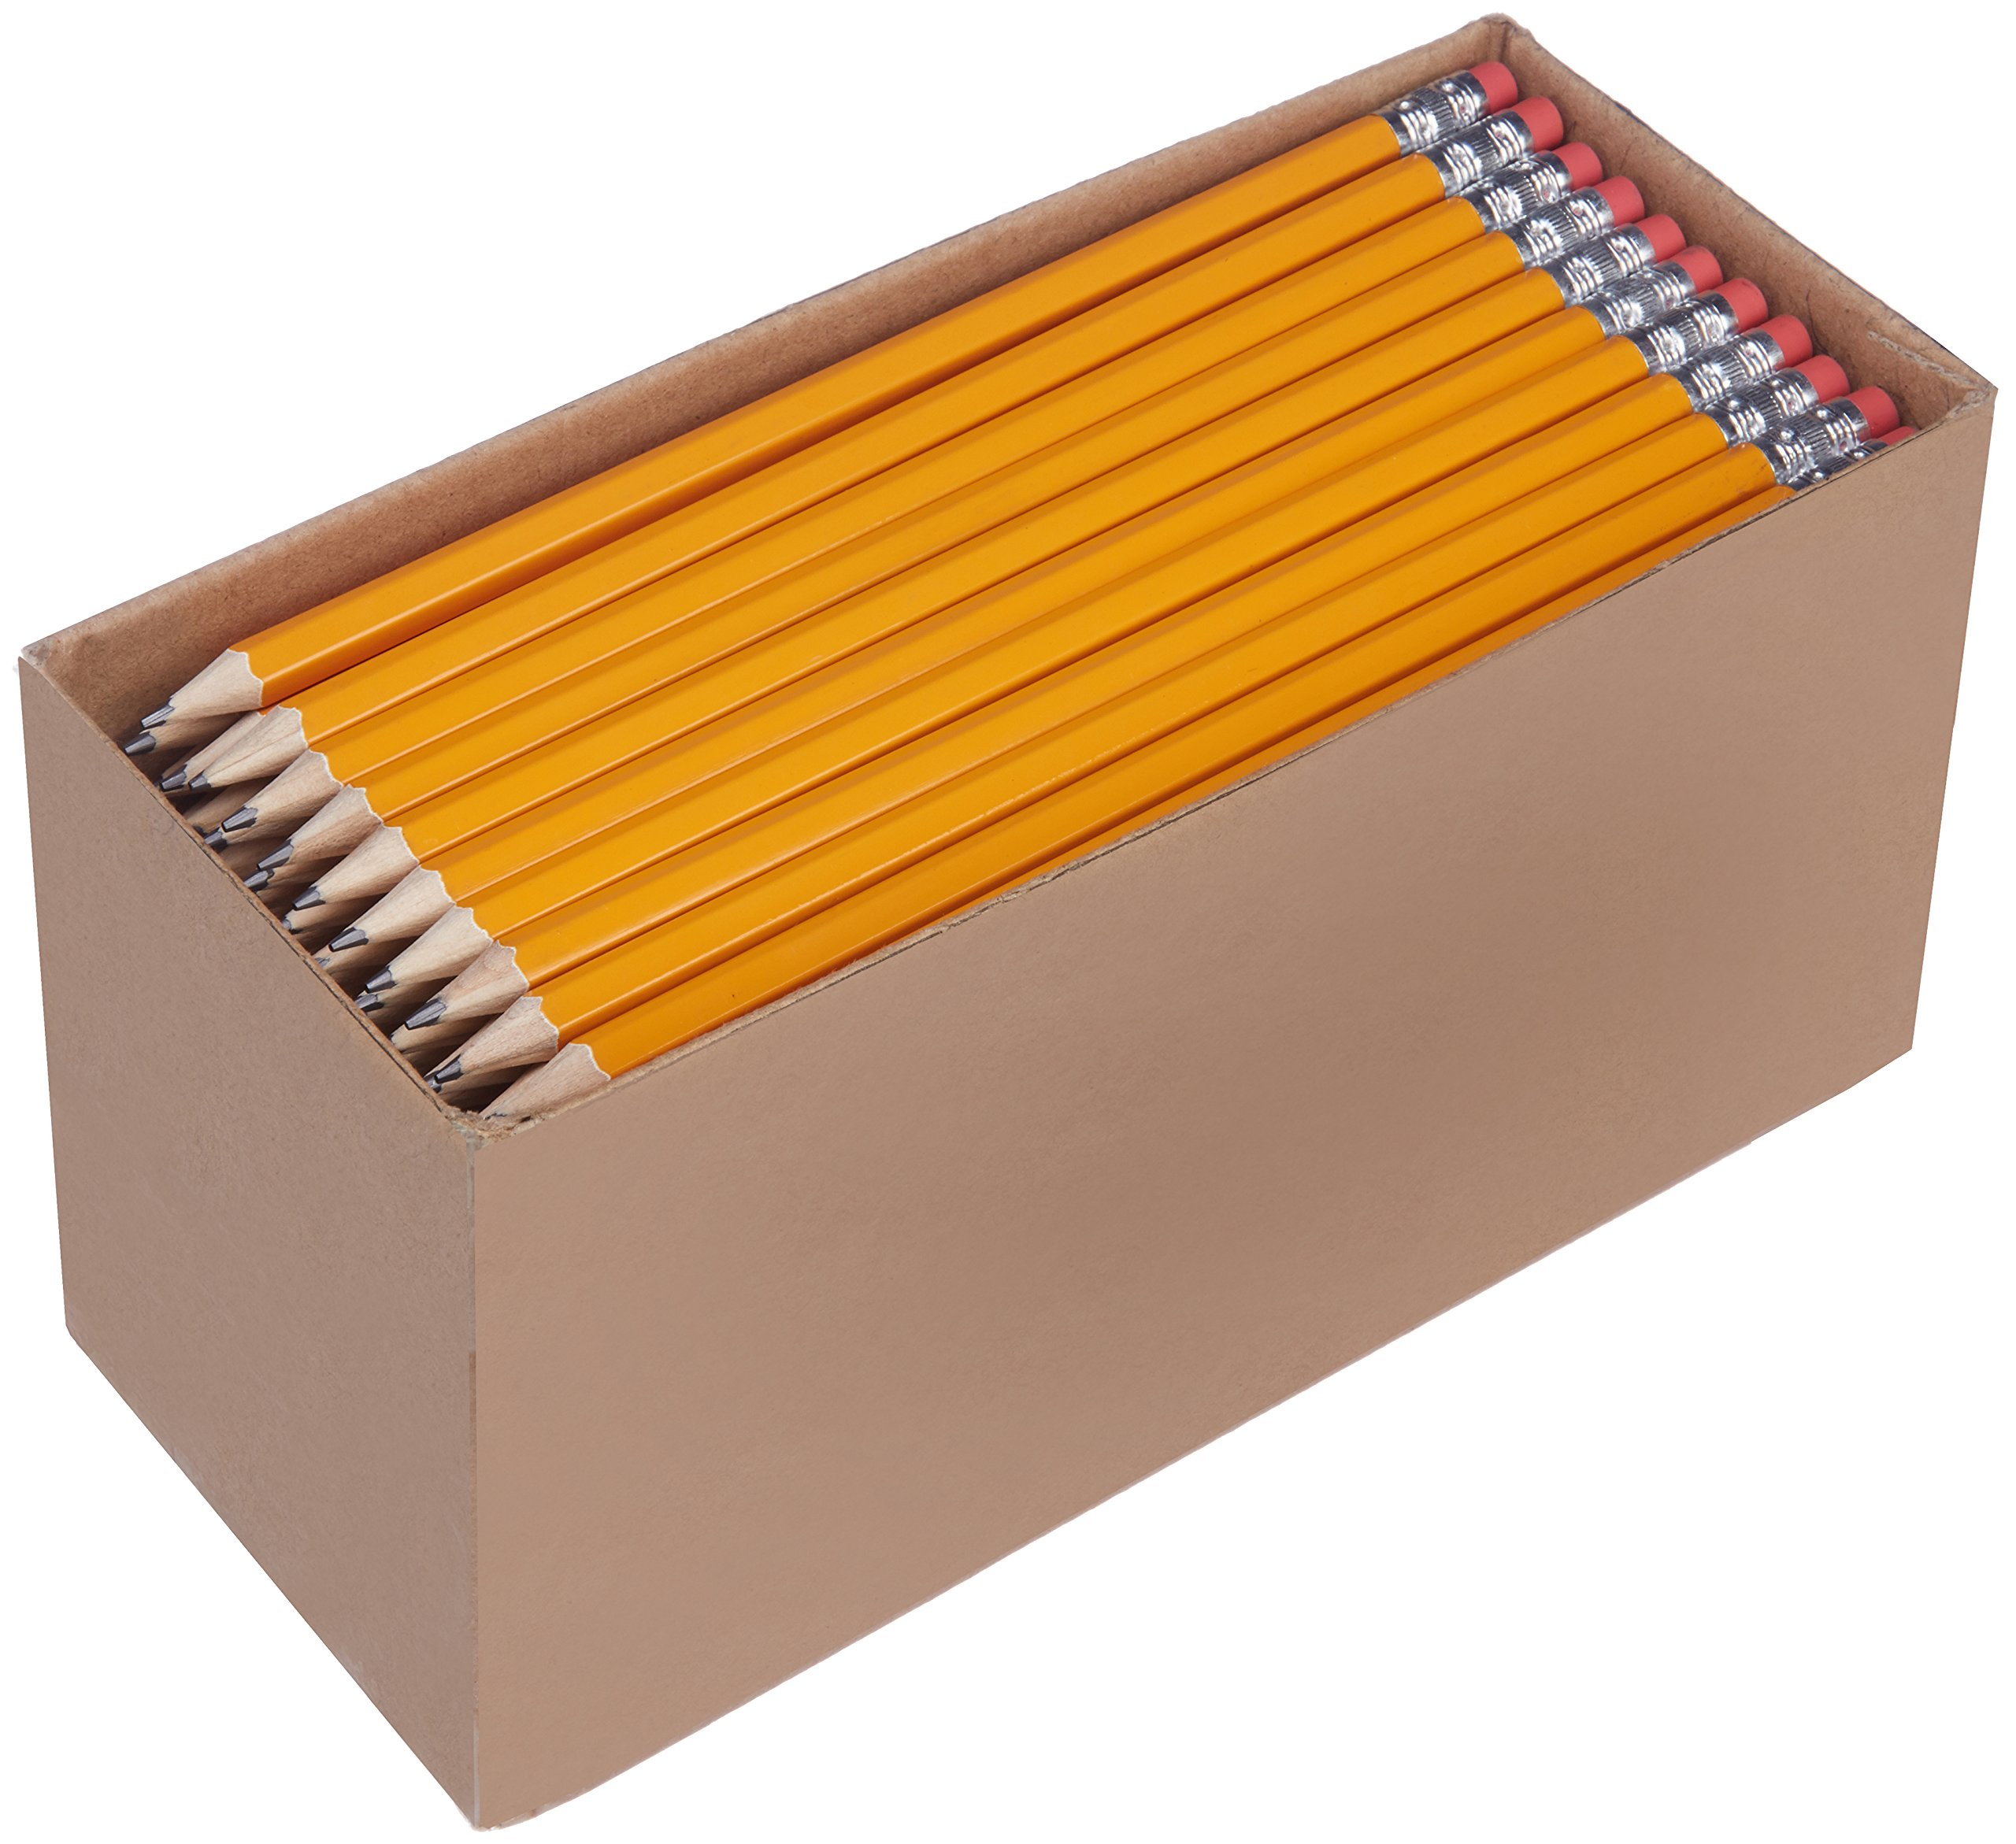 티콘데로가 HB 연필 30개, 150개 세트 Ticonderoga AmazonBasics Pre-sharpened Wood Cased #2 HB Pencils, 30, 150 Pack